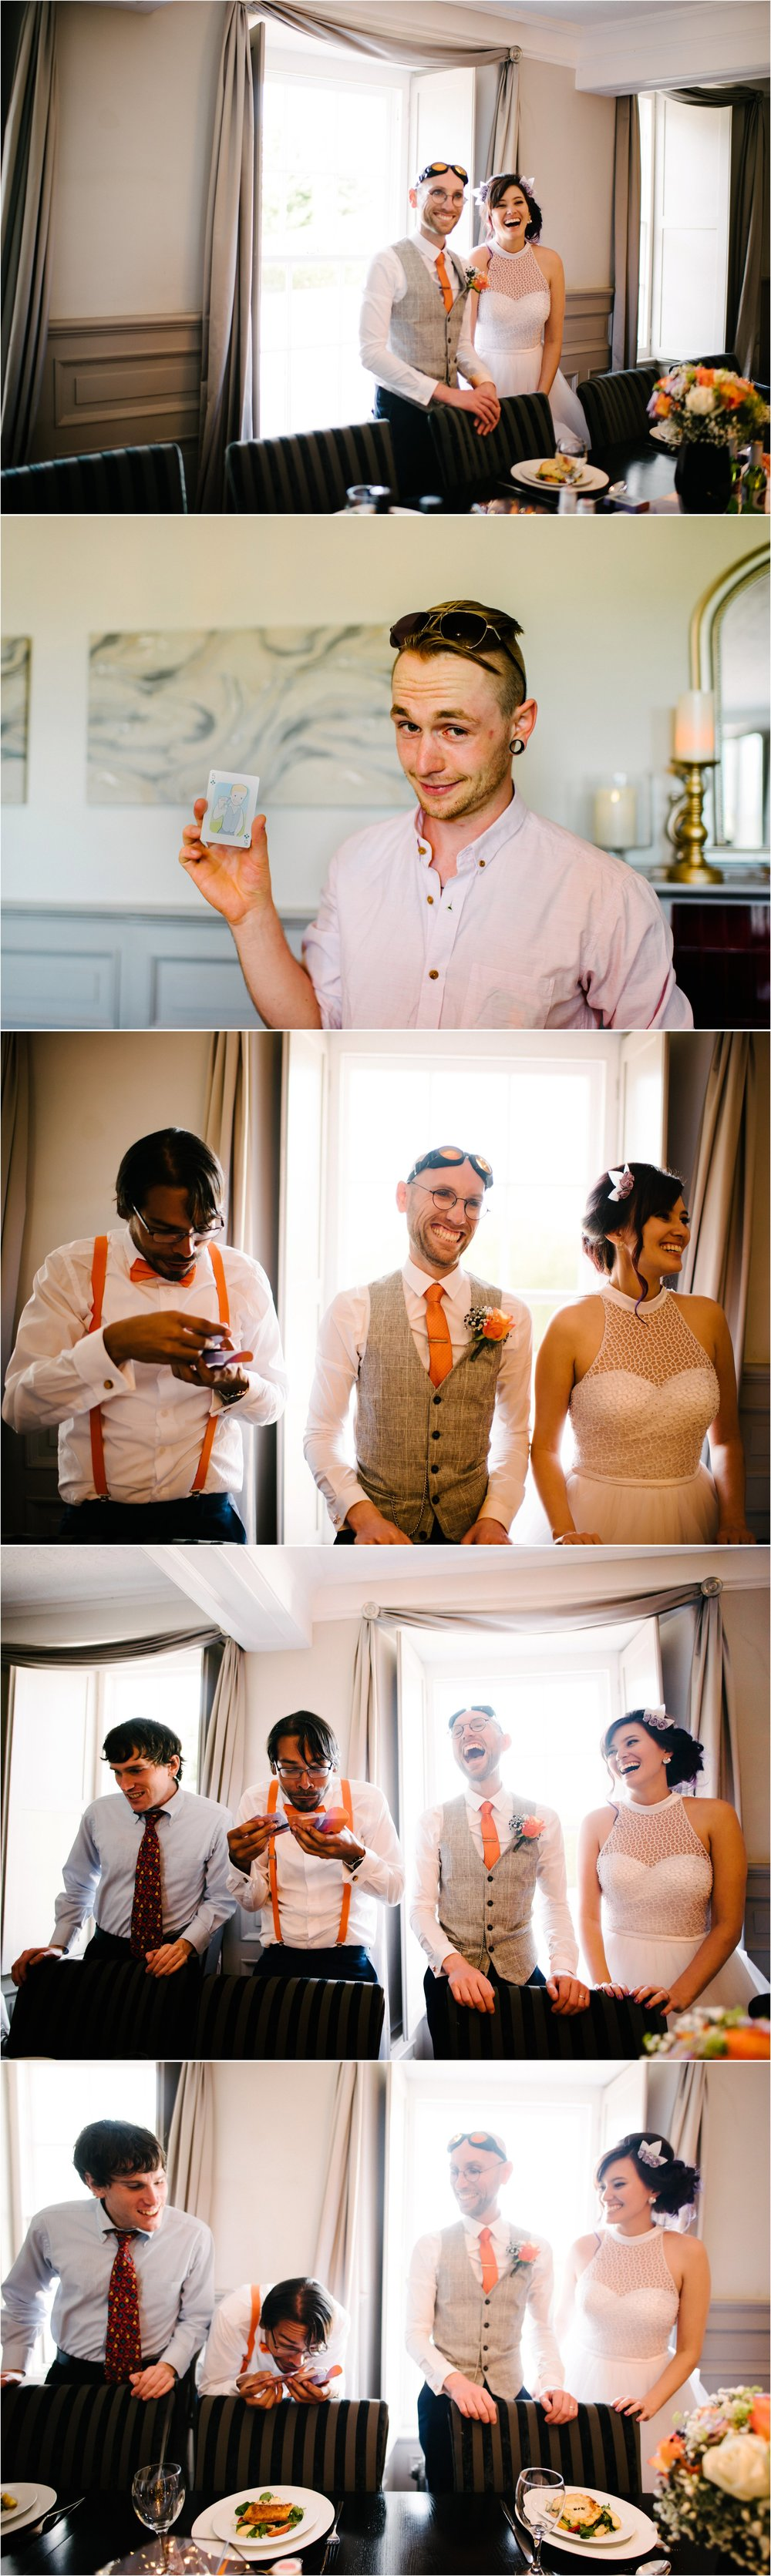 Devon wedding photographer_0203.jpg